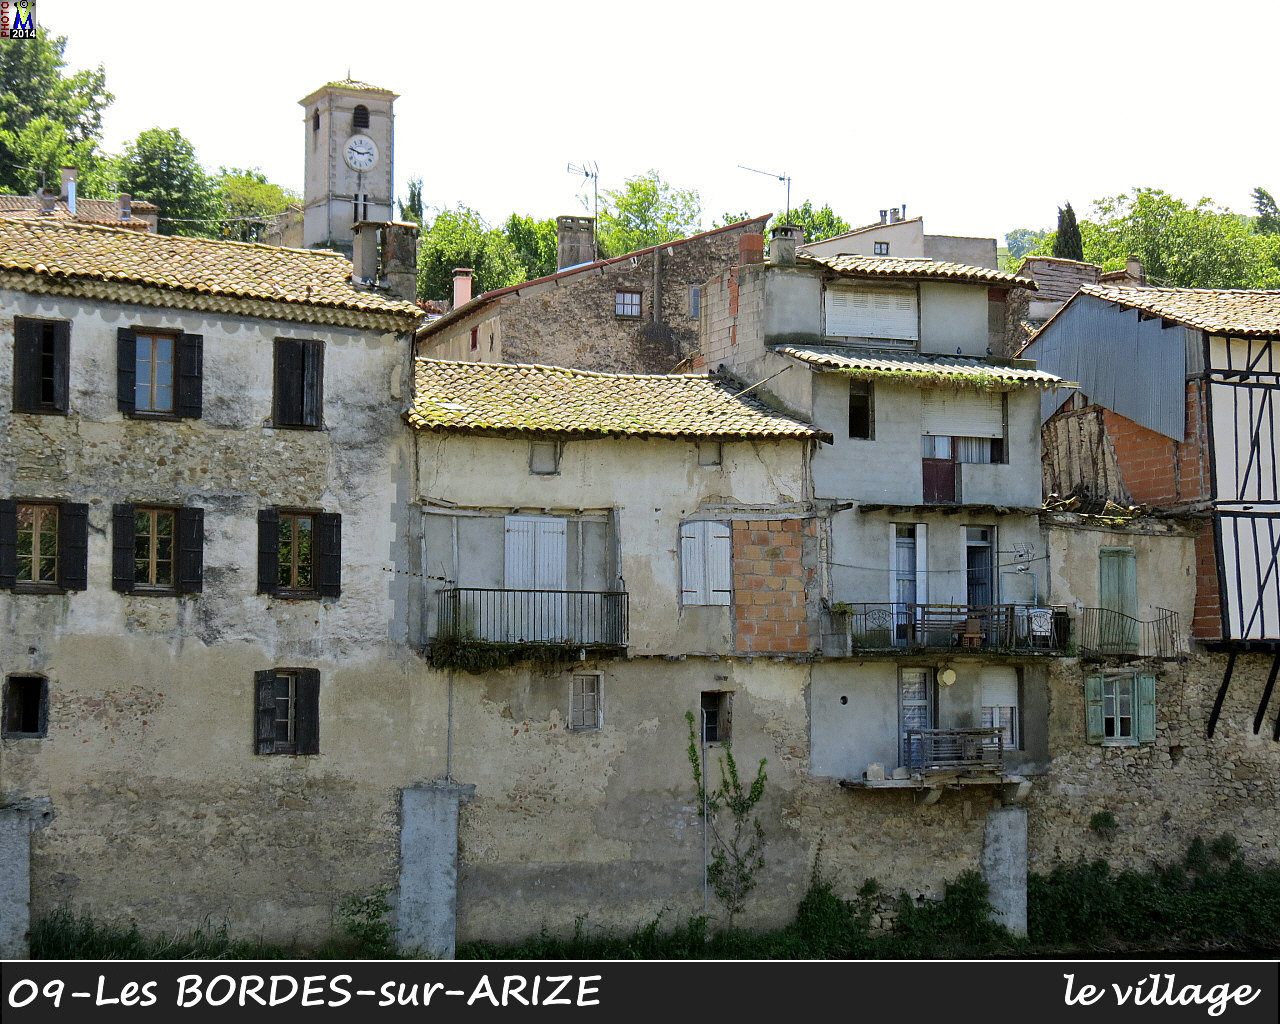 09BORDES-ARIZE_village_102.jpg